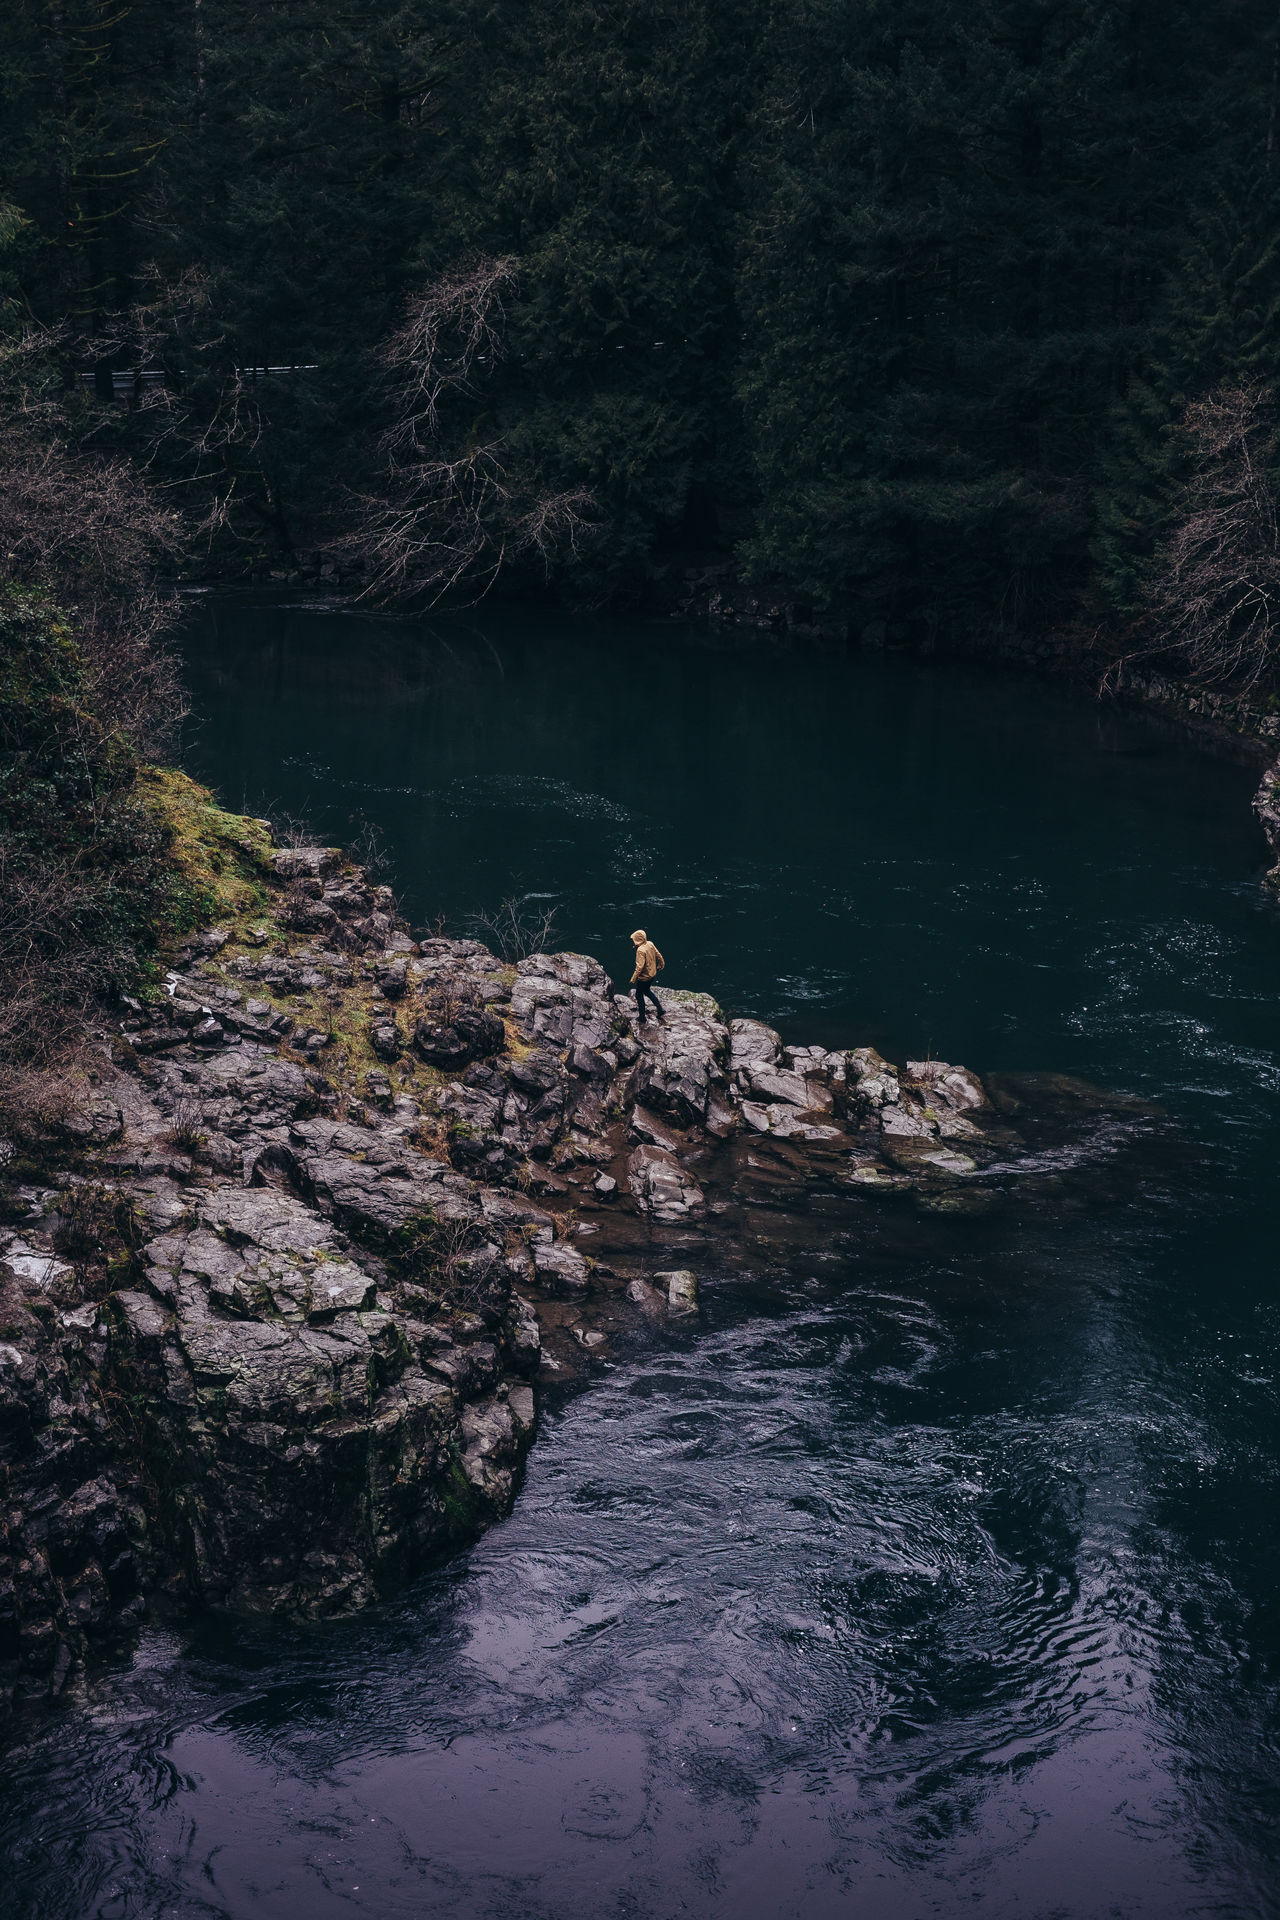 Adventure Nature Beauty In Nature Outdoors Scenics Water Travel Destinations Travel River Tranquil Scene PNW One Person Tourism Moody One Man Only Moultonfalls Washington State Lone Miles Away